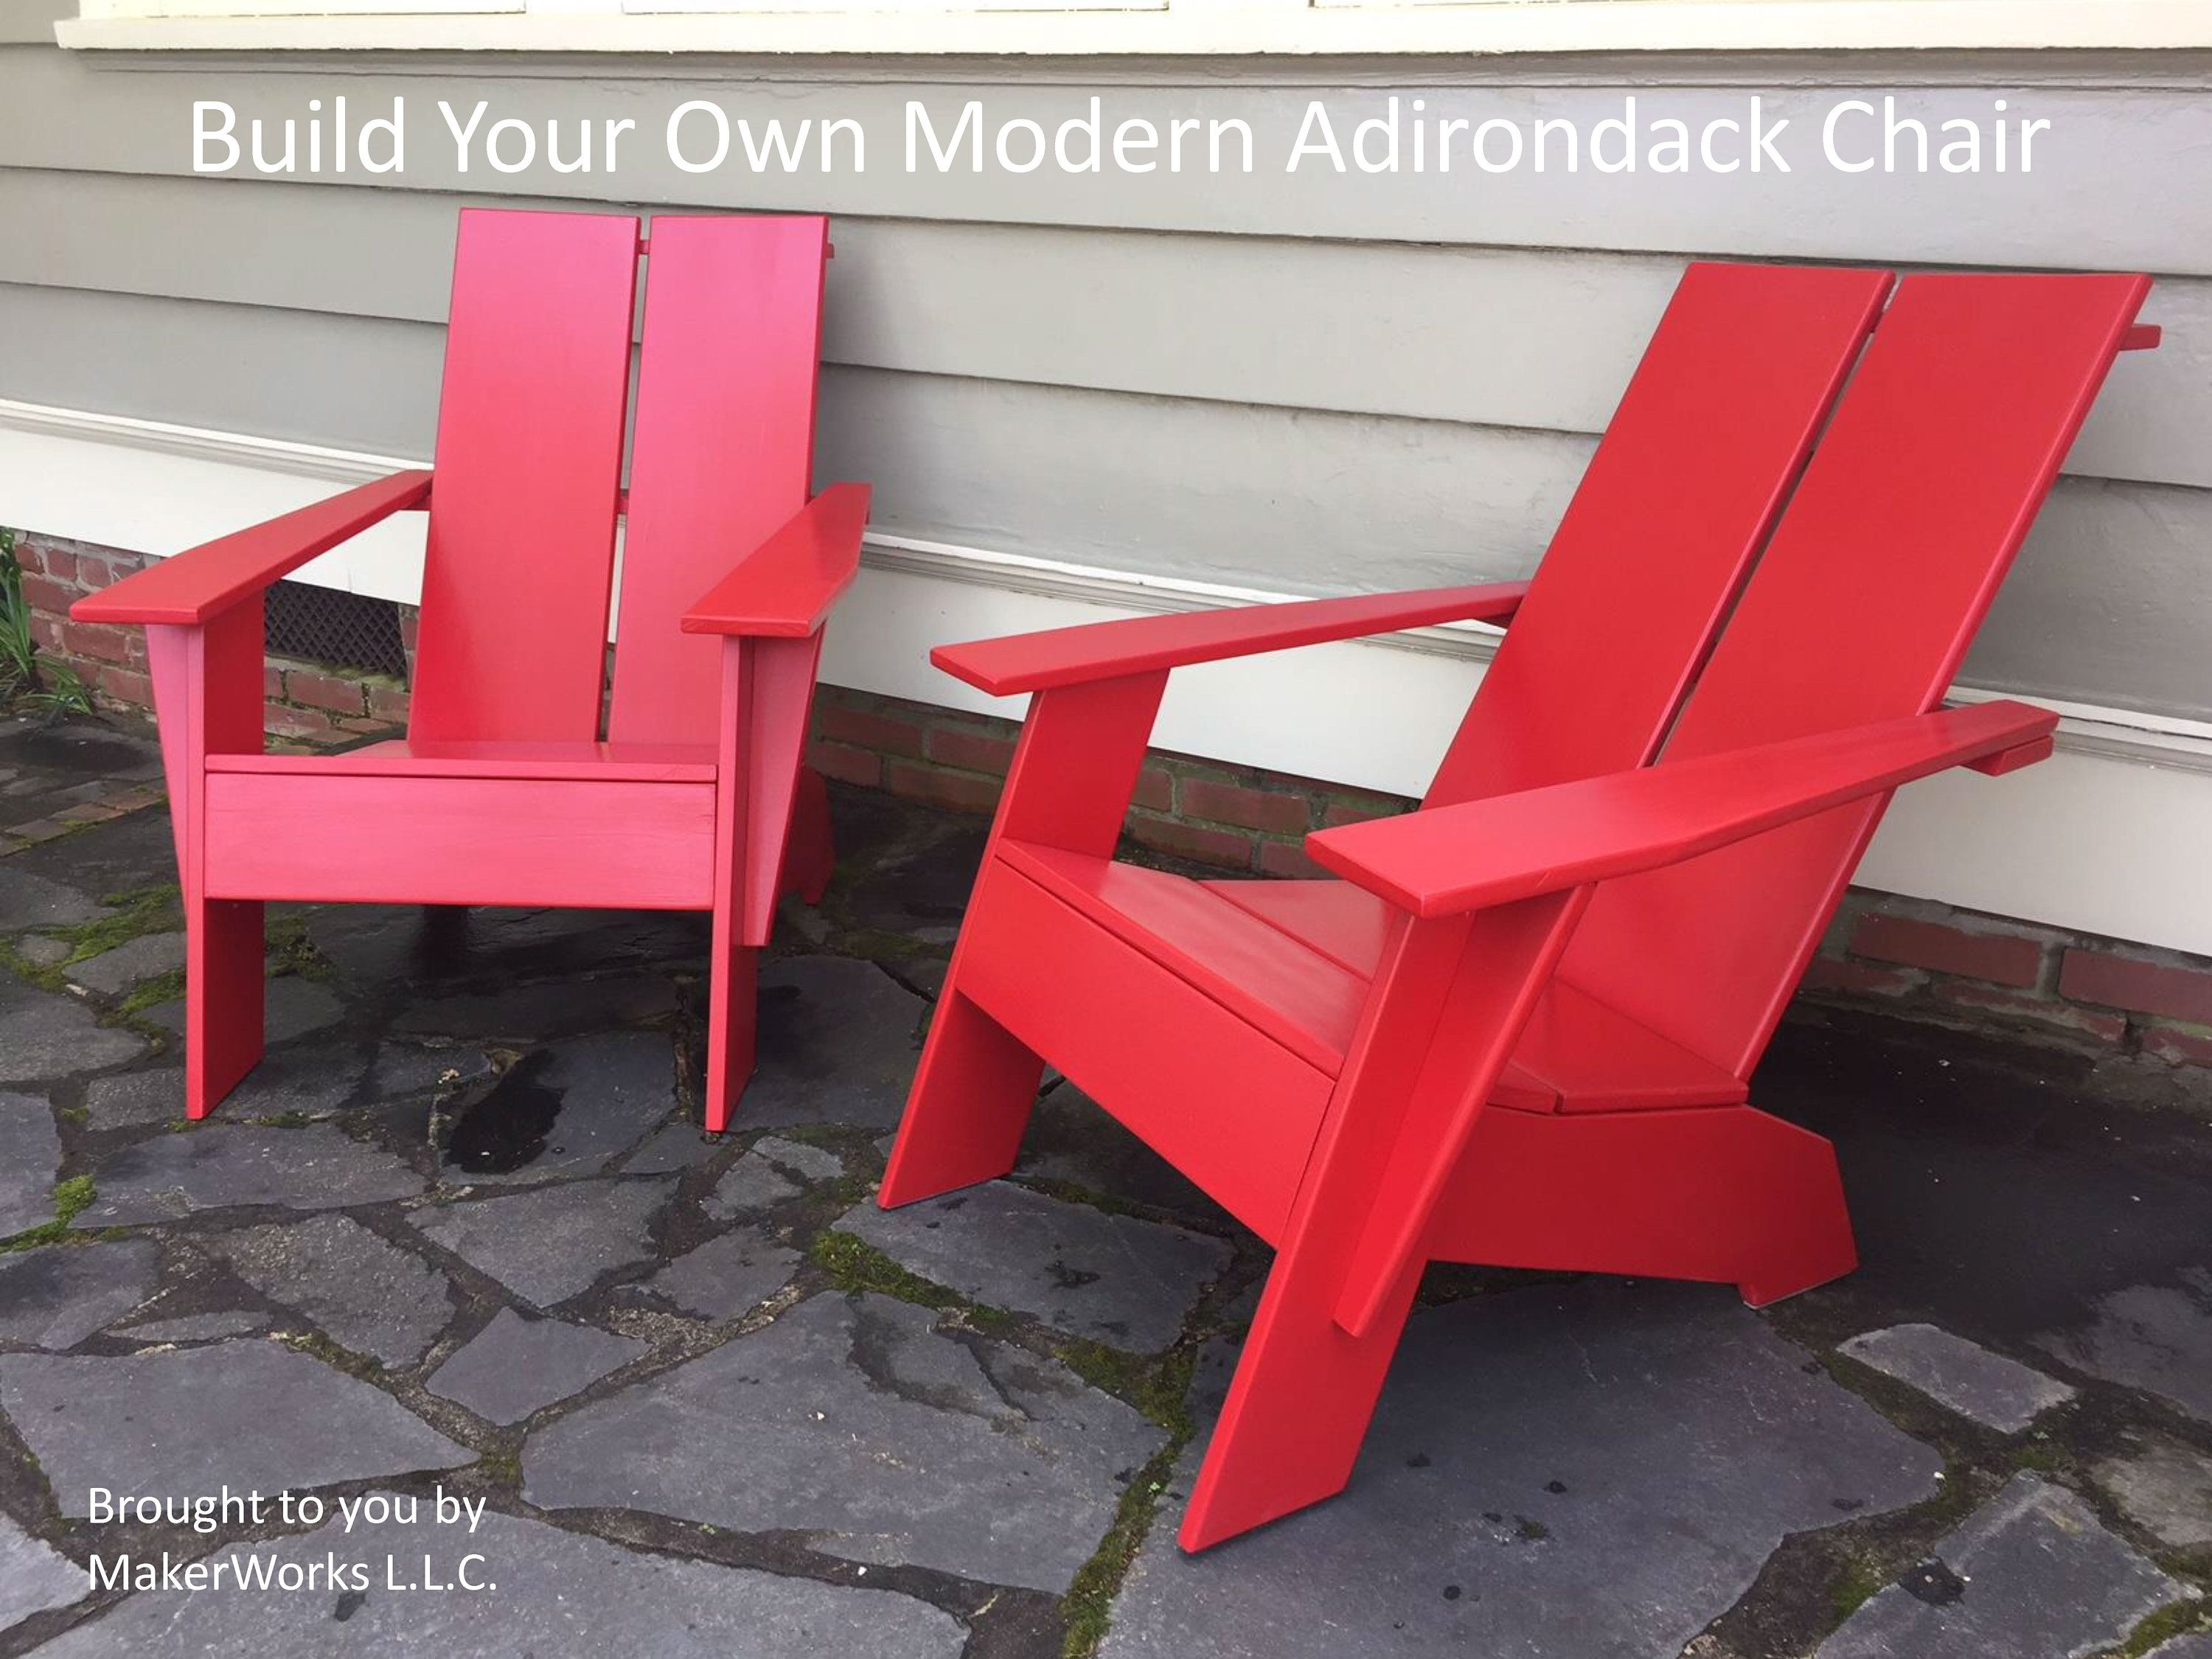 Build Your Own Modern Adirondack Chair Etsy in 2019